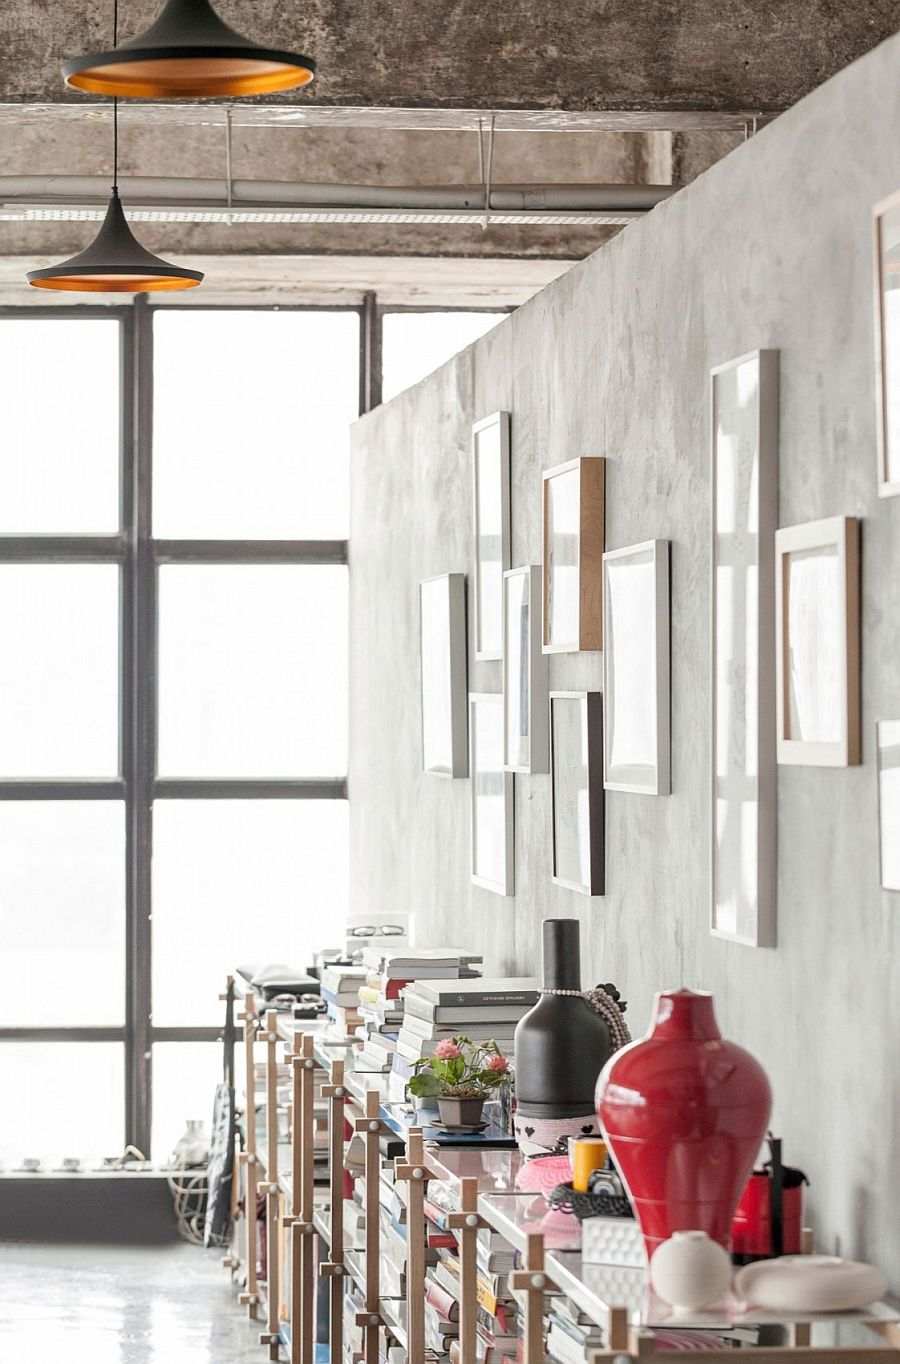 Bookshelves provide both storage space and a decorative option in the industrial loft